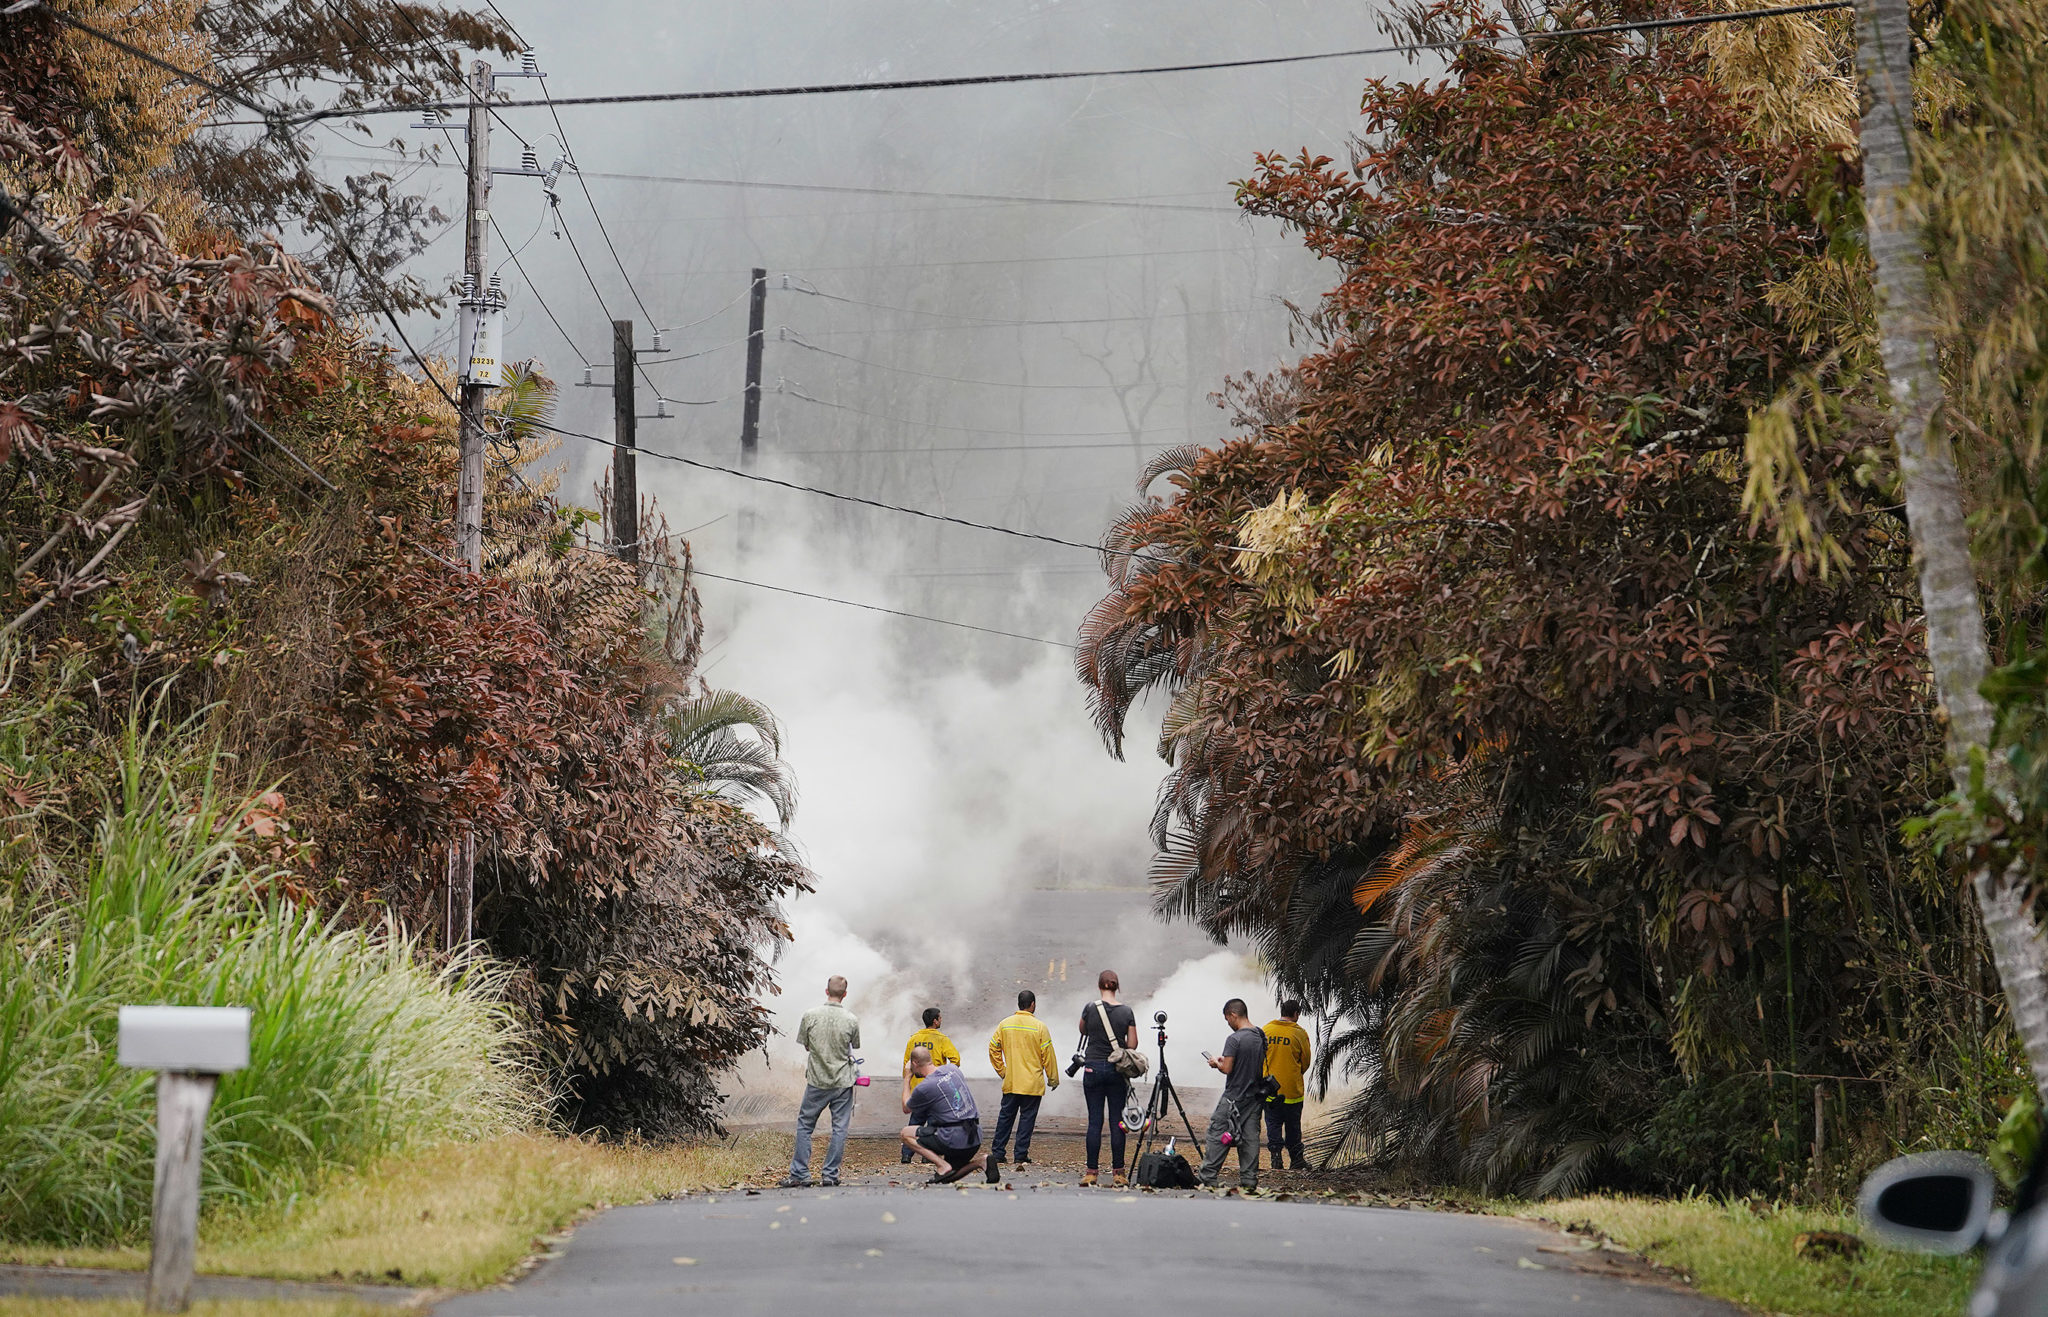 <p>The eruptions and release of sulfur  dioxide fumes poisoned trees in the Leilani Estates community. Moments earlier, an evacuation alert had been issued for the neighborhood.</p>